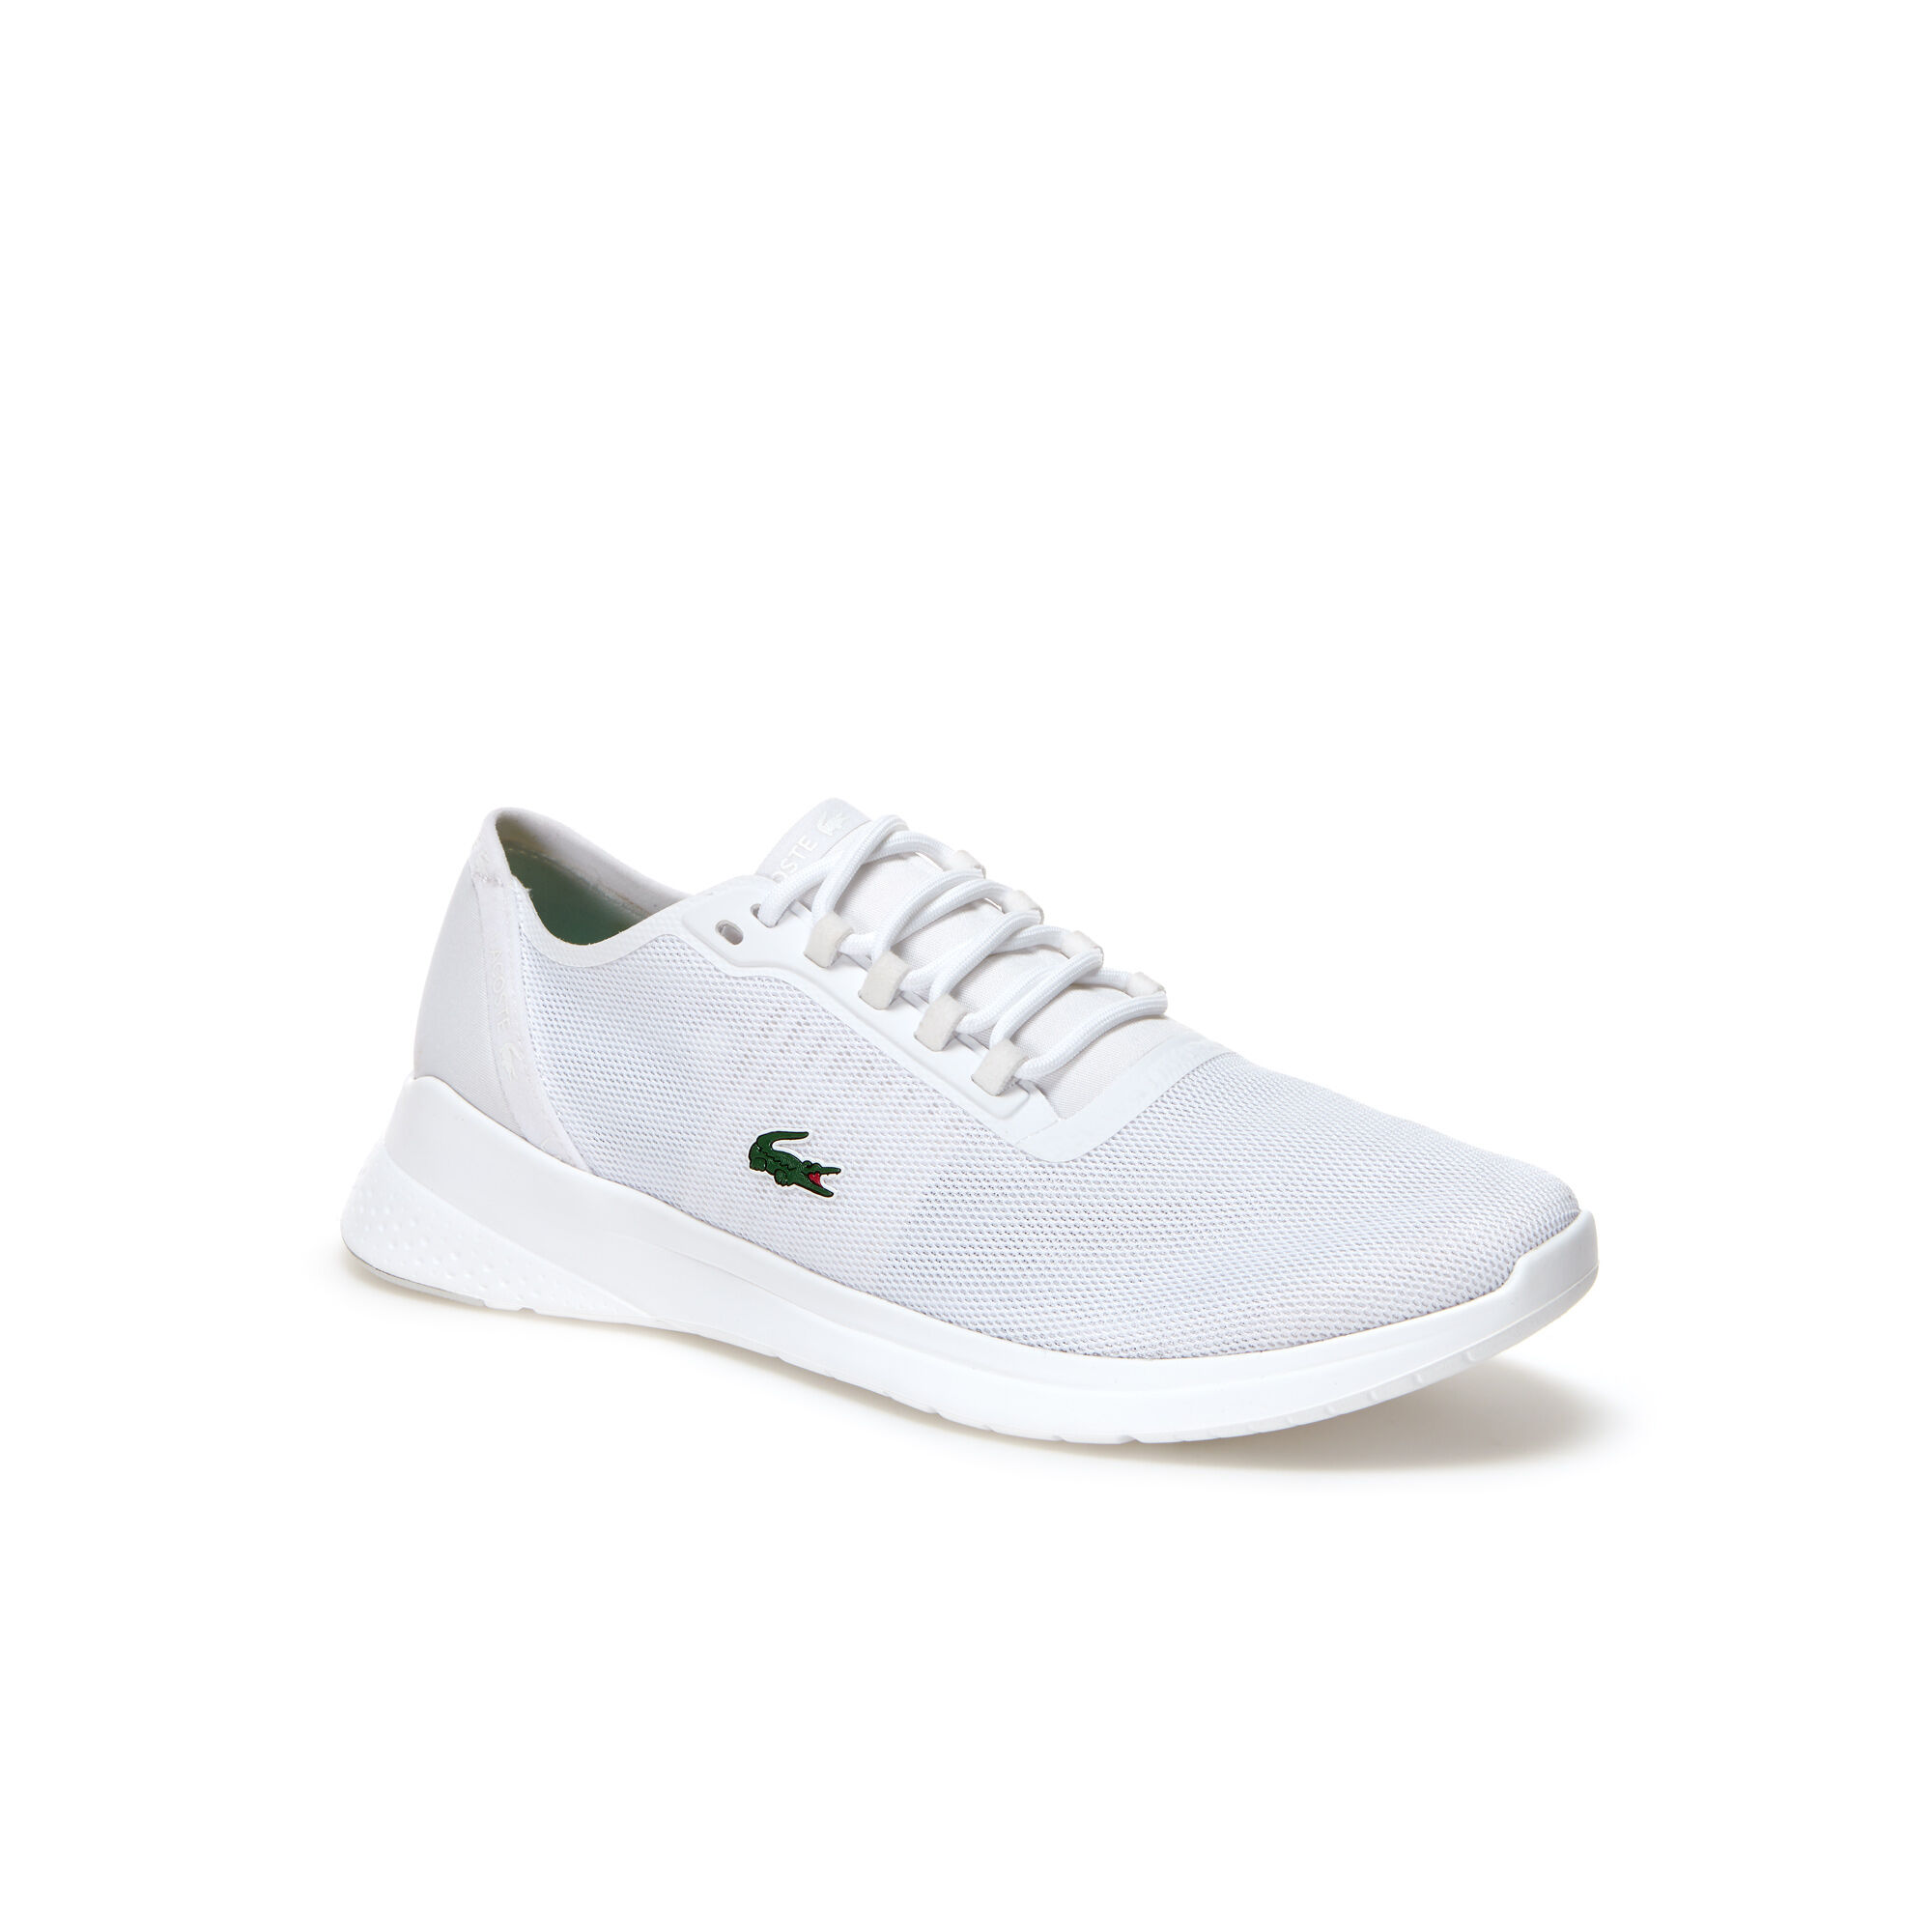 lacoste shoes urban equipment australian news network